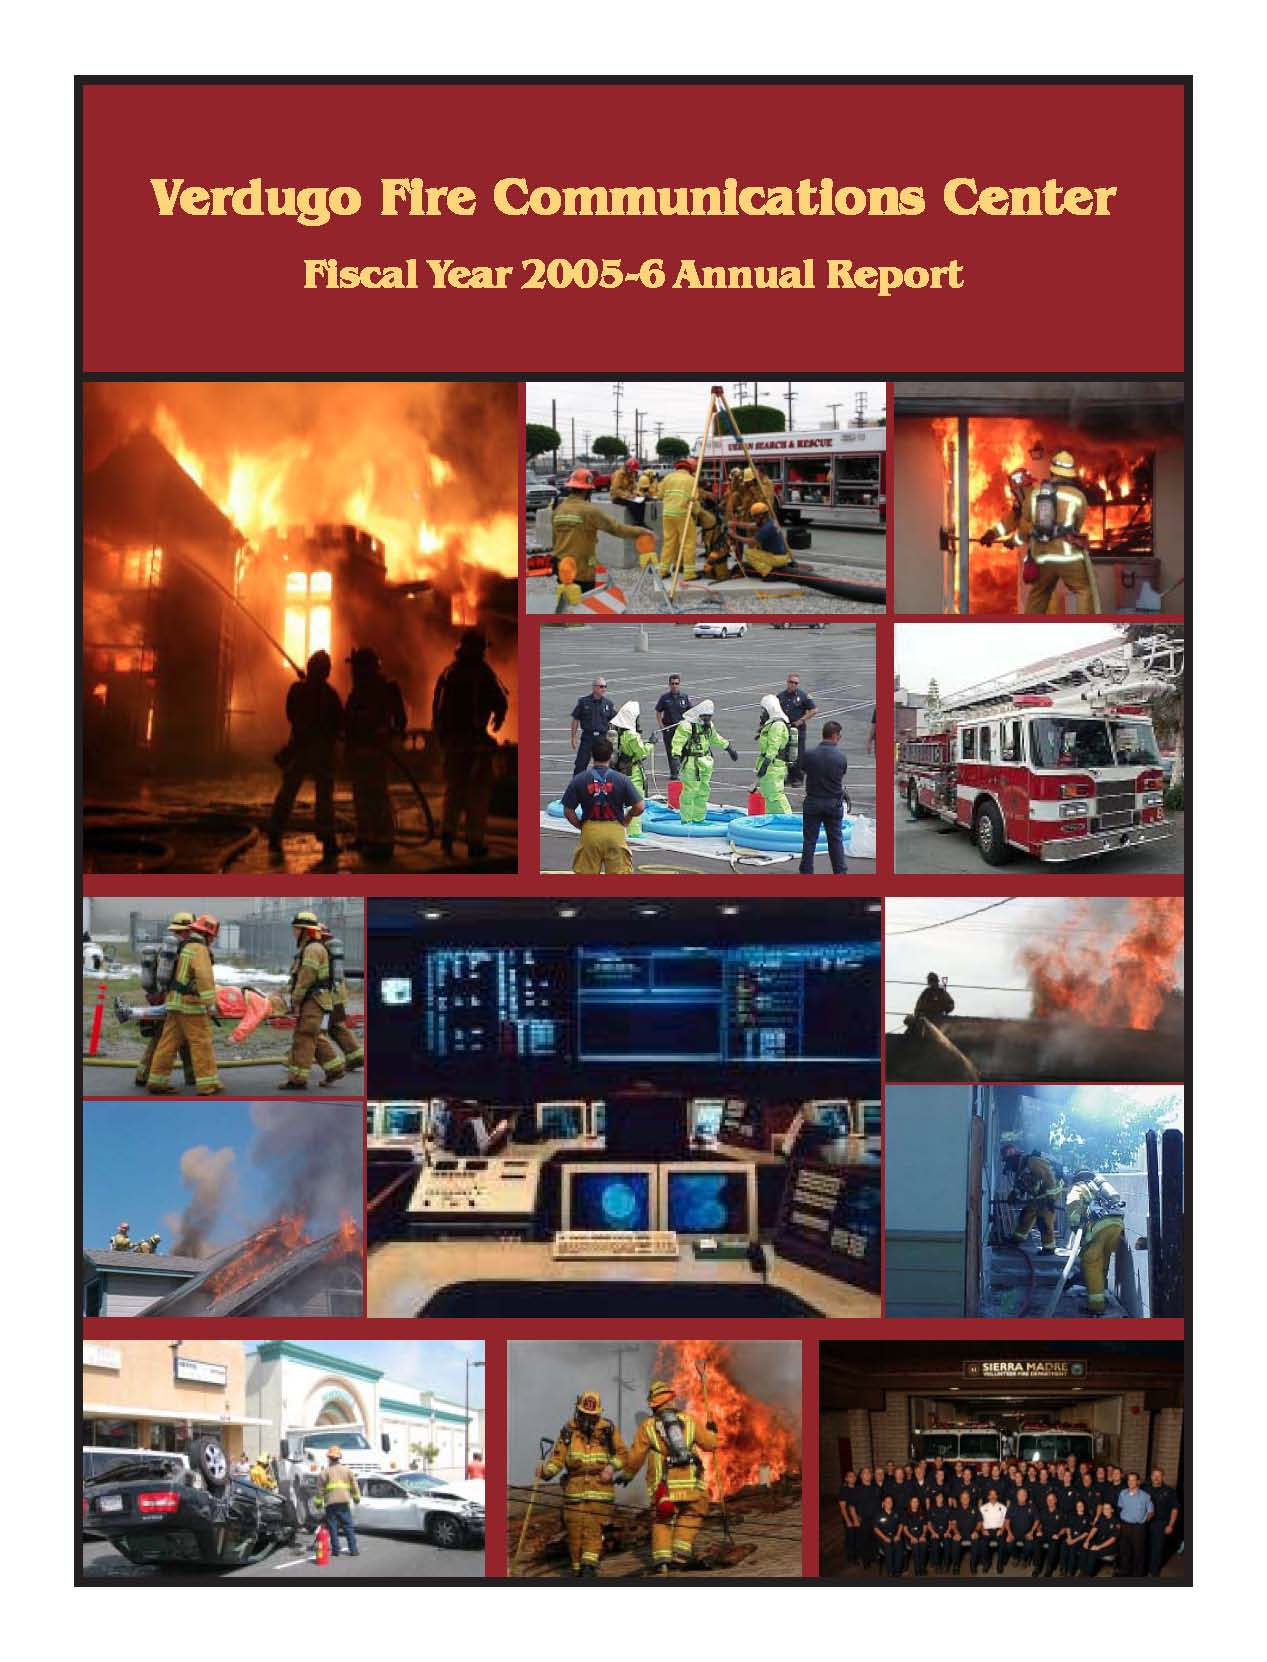 FY 2005-2006 annual report Cover